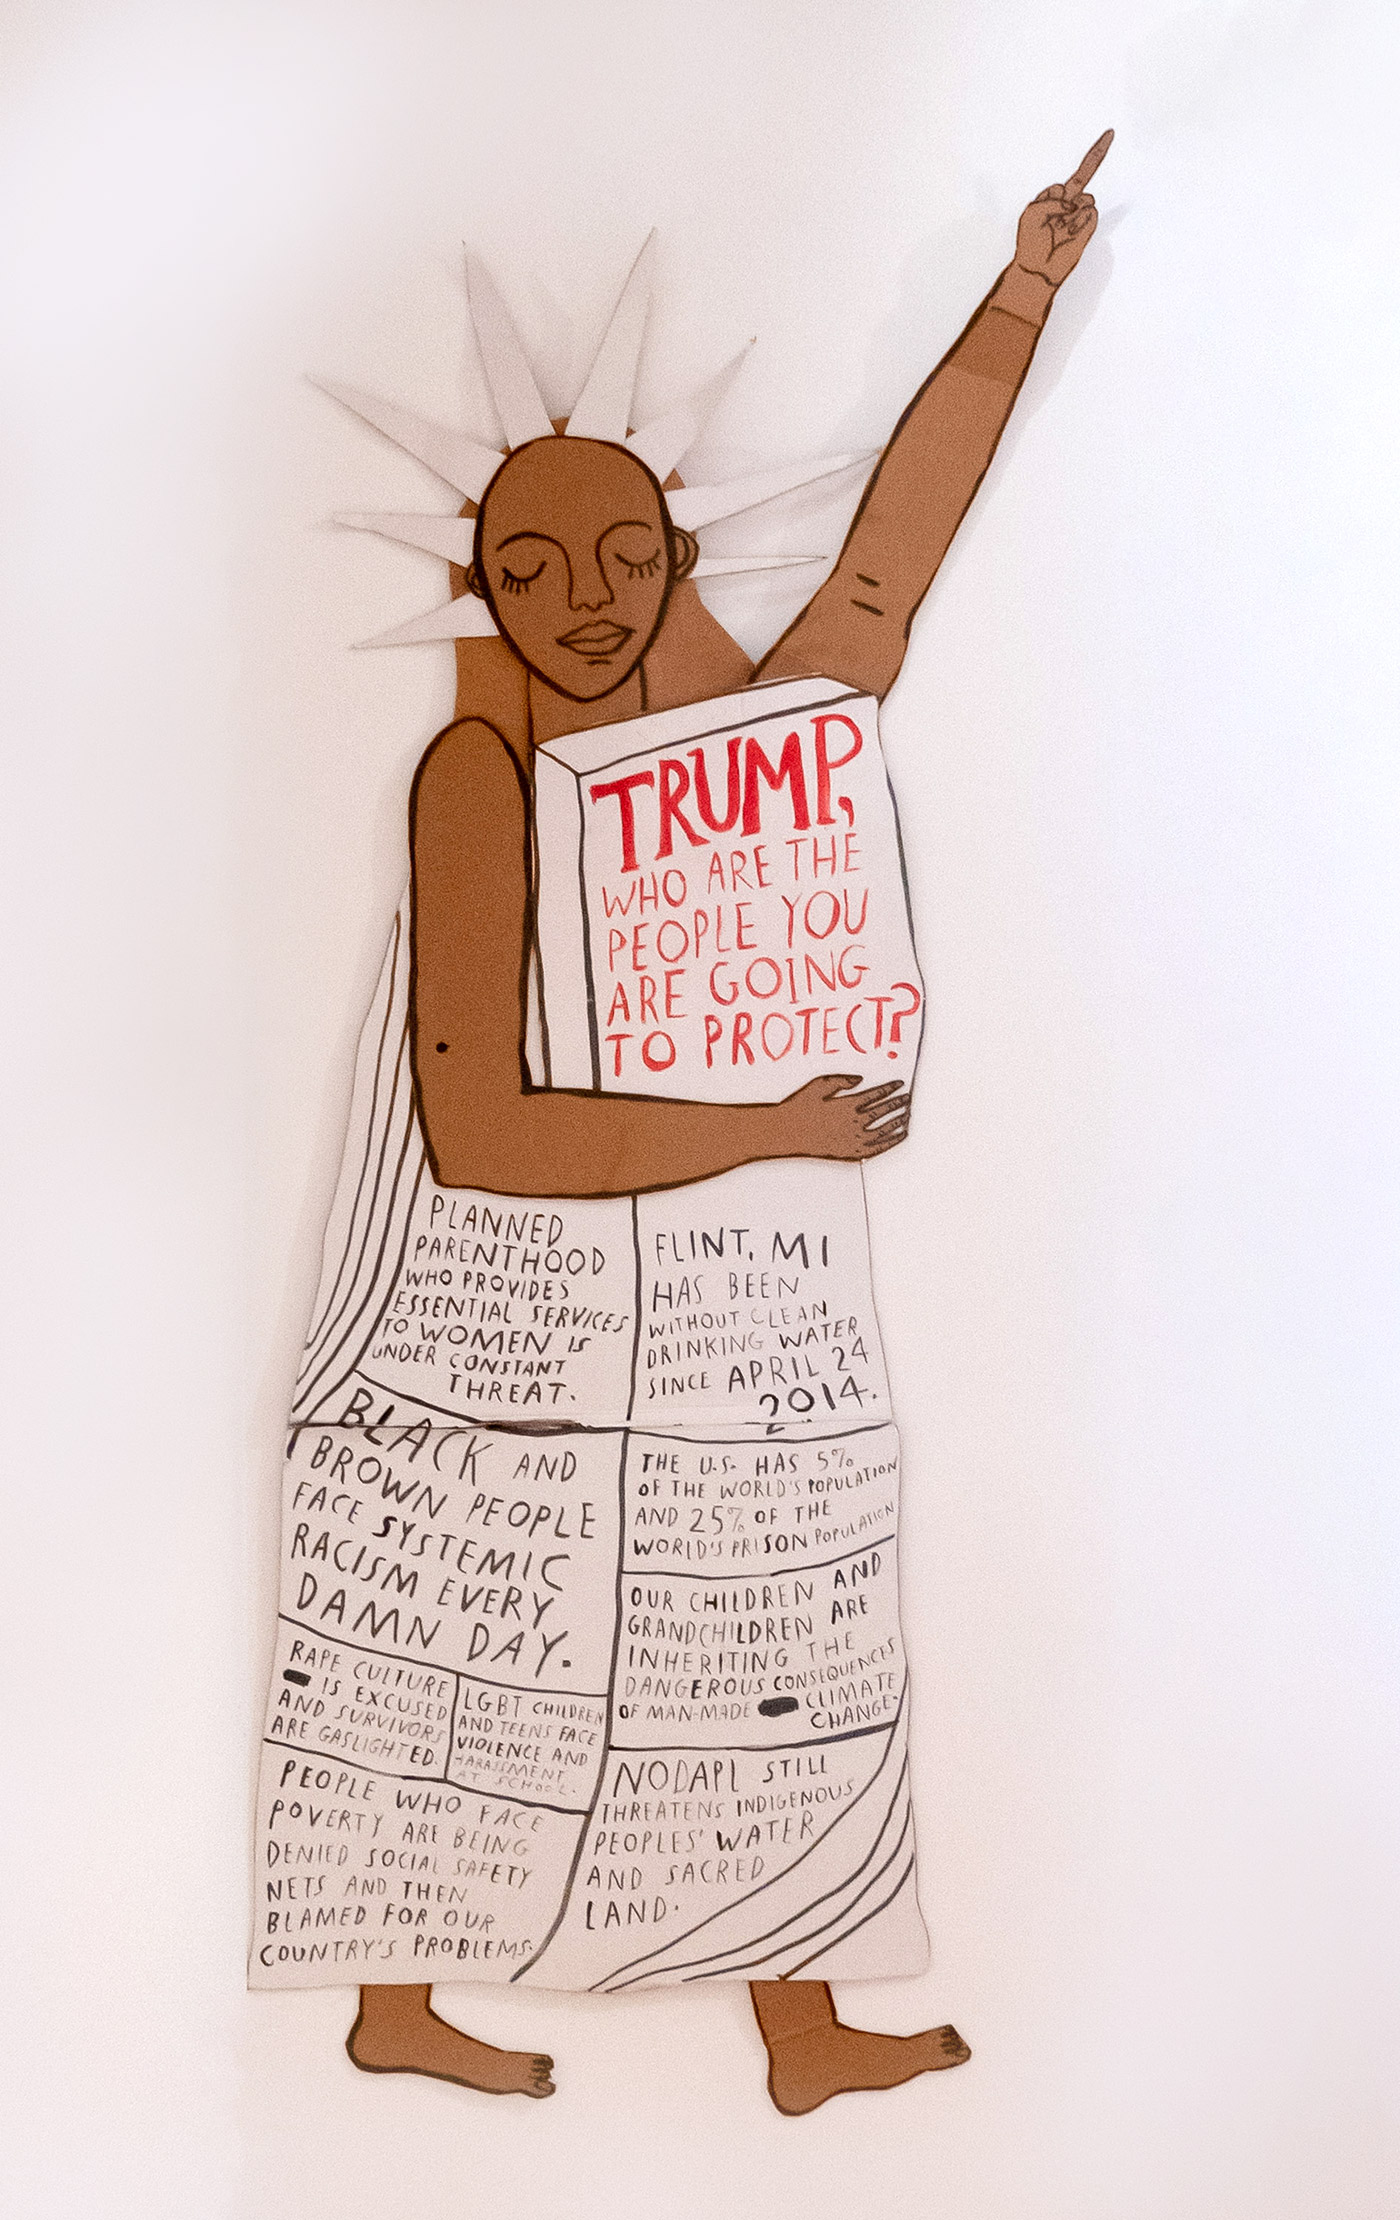 Lady Liberty (Trump, who are the people you are going to protect?)